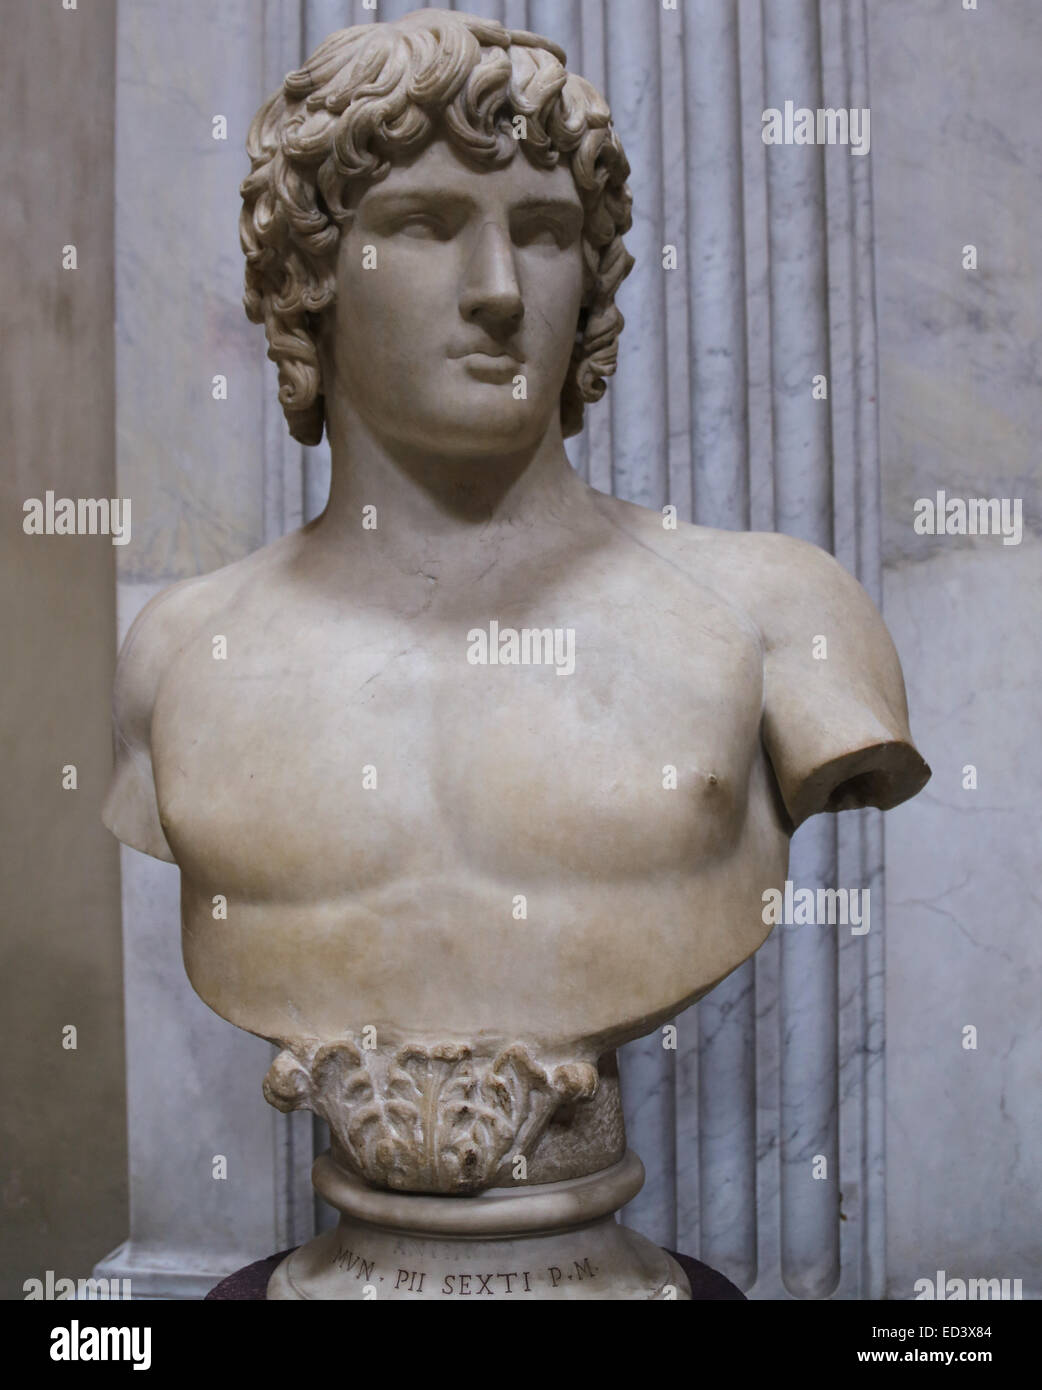 Antinous (111-130). Bithynian Greek youth and a favourite of the Emperor Hadrian. Found in Hadrian's Villa. - Stock Image